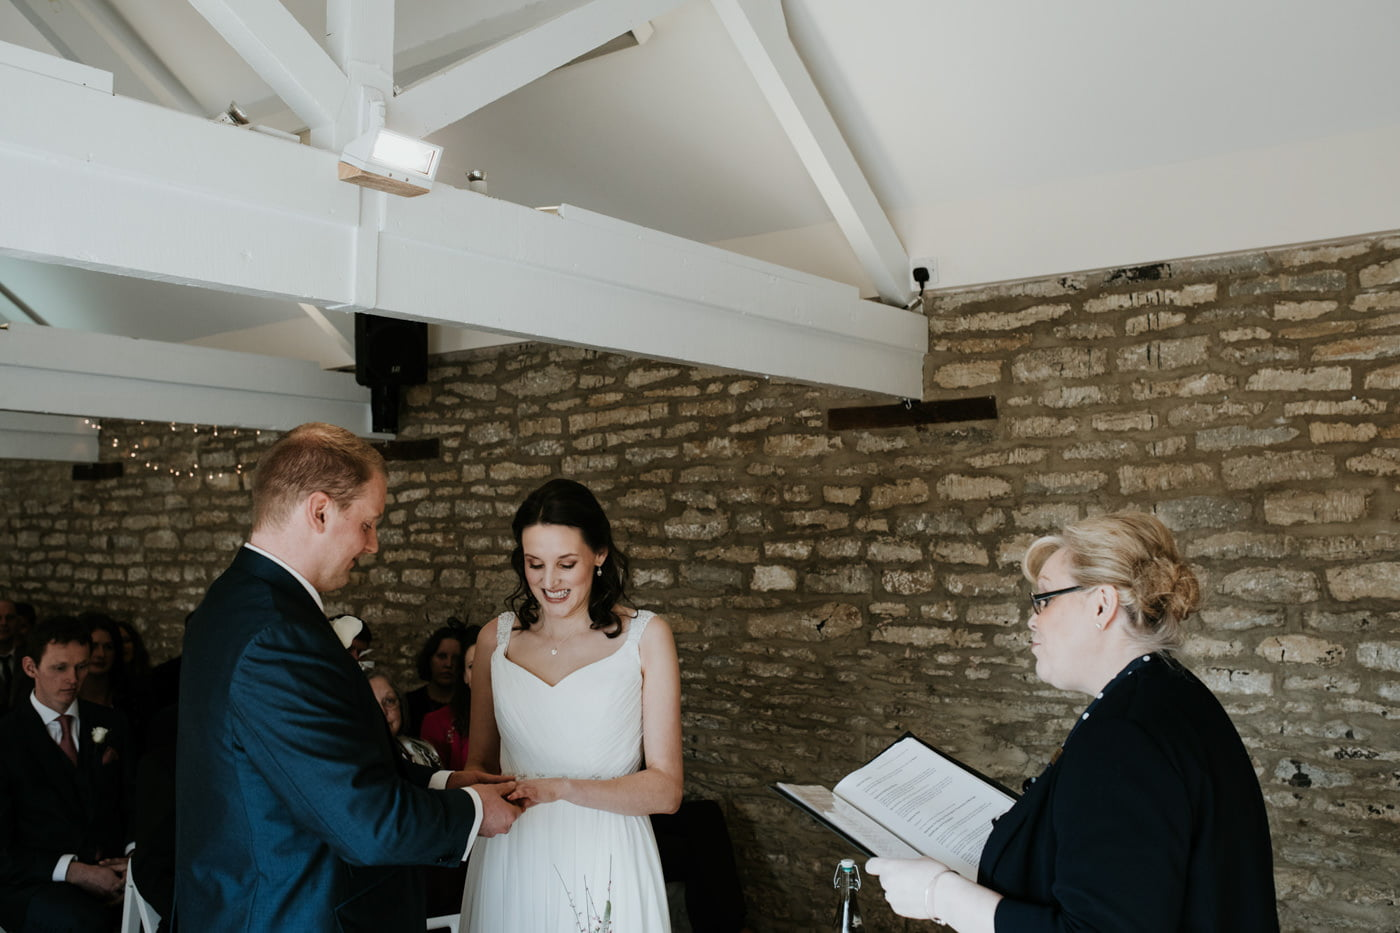 Ruth and Ben, Winkworth Farm, Wiltshire 1